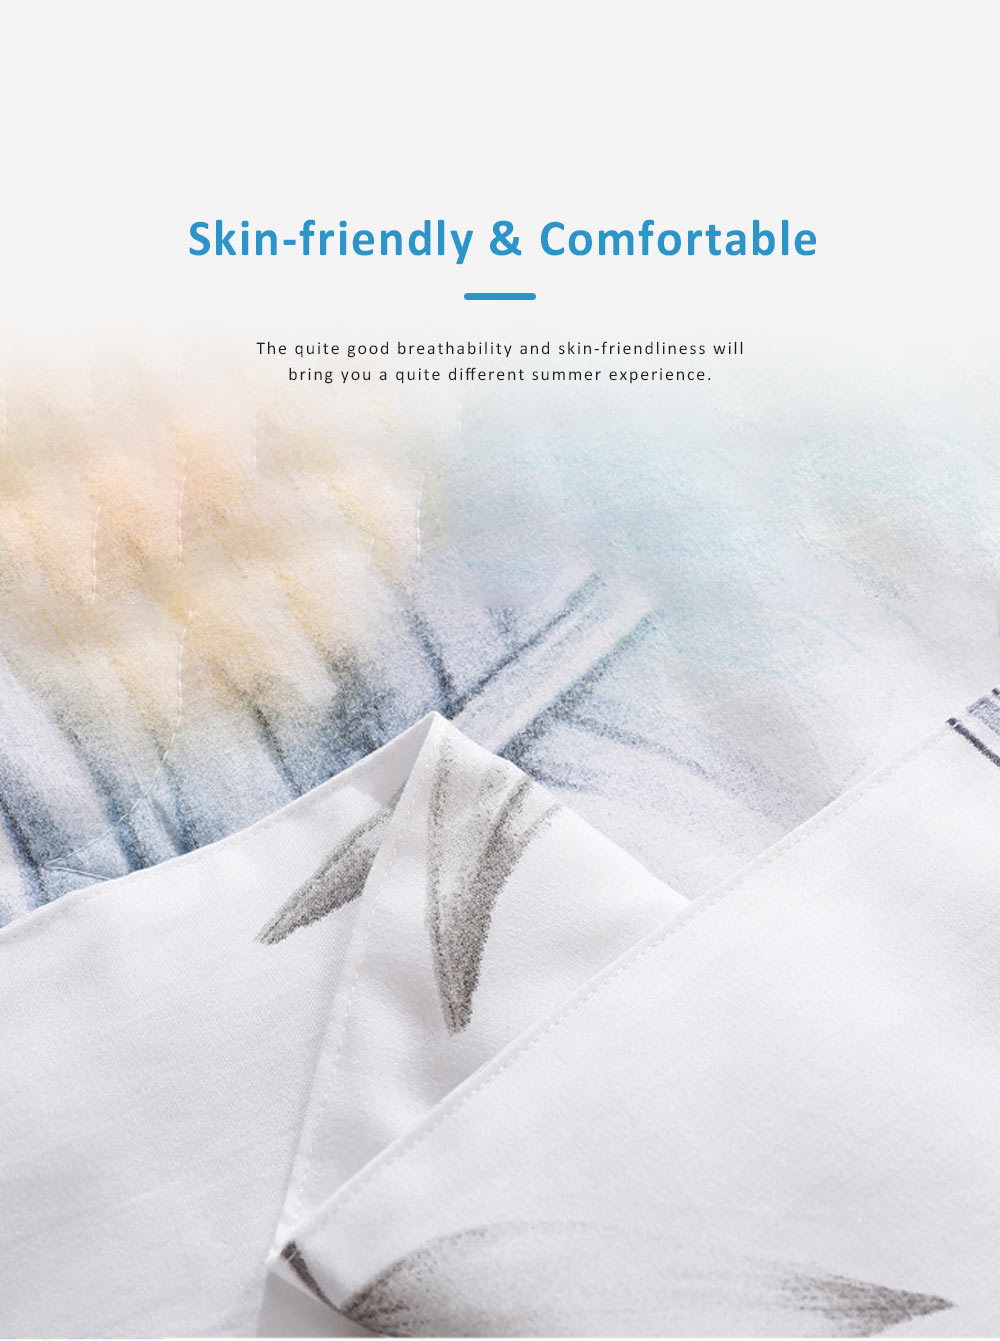 Washable Breathable Cotton Summer Quilt with Fadeless Printing, Skin-friendly Blankets for Air Conditioning Summer Quilt 6